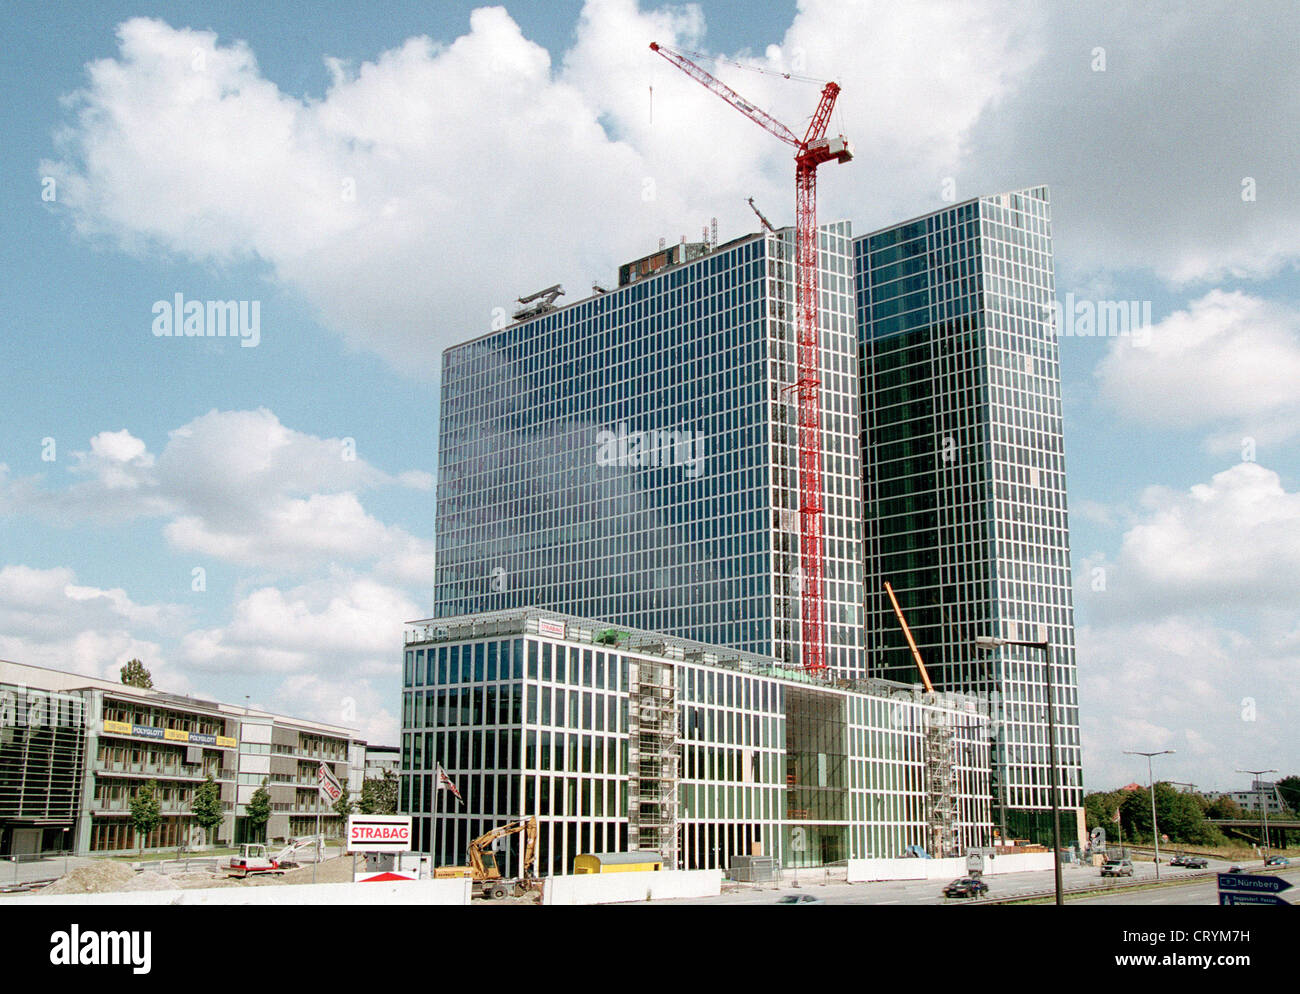 Bueroimmobilie HIghlight Towers in Munich - Stock Image